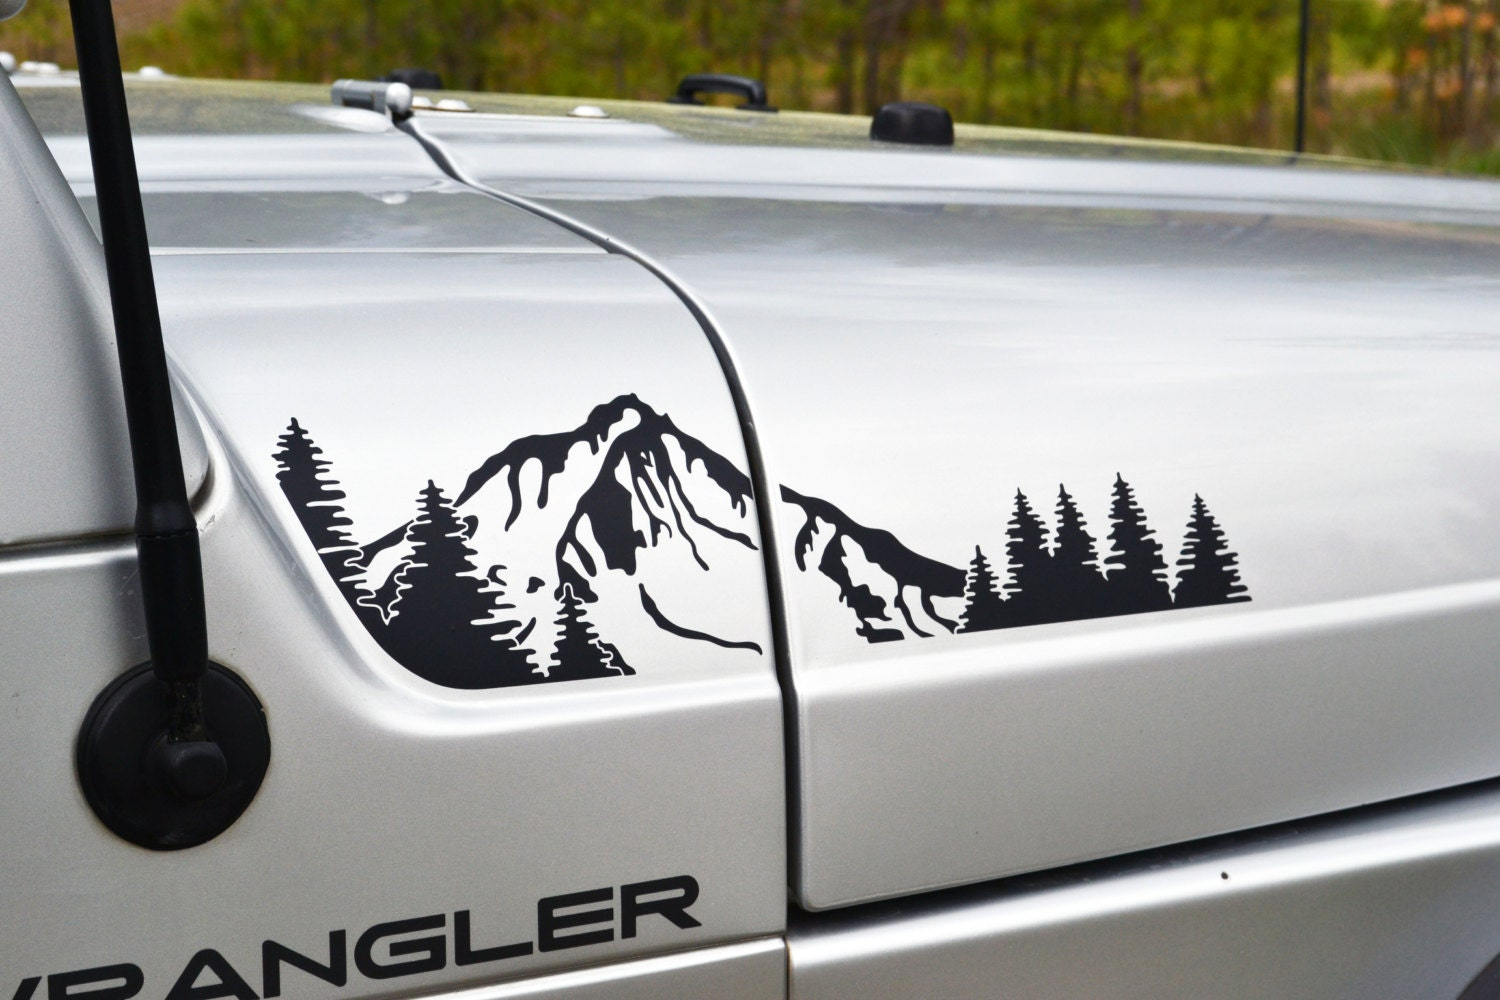 Jeep Wrangler Tj Extended Hood With Mountain And Trees Decal